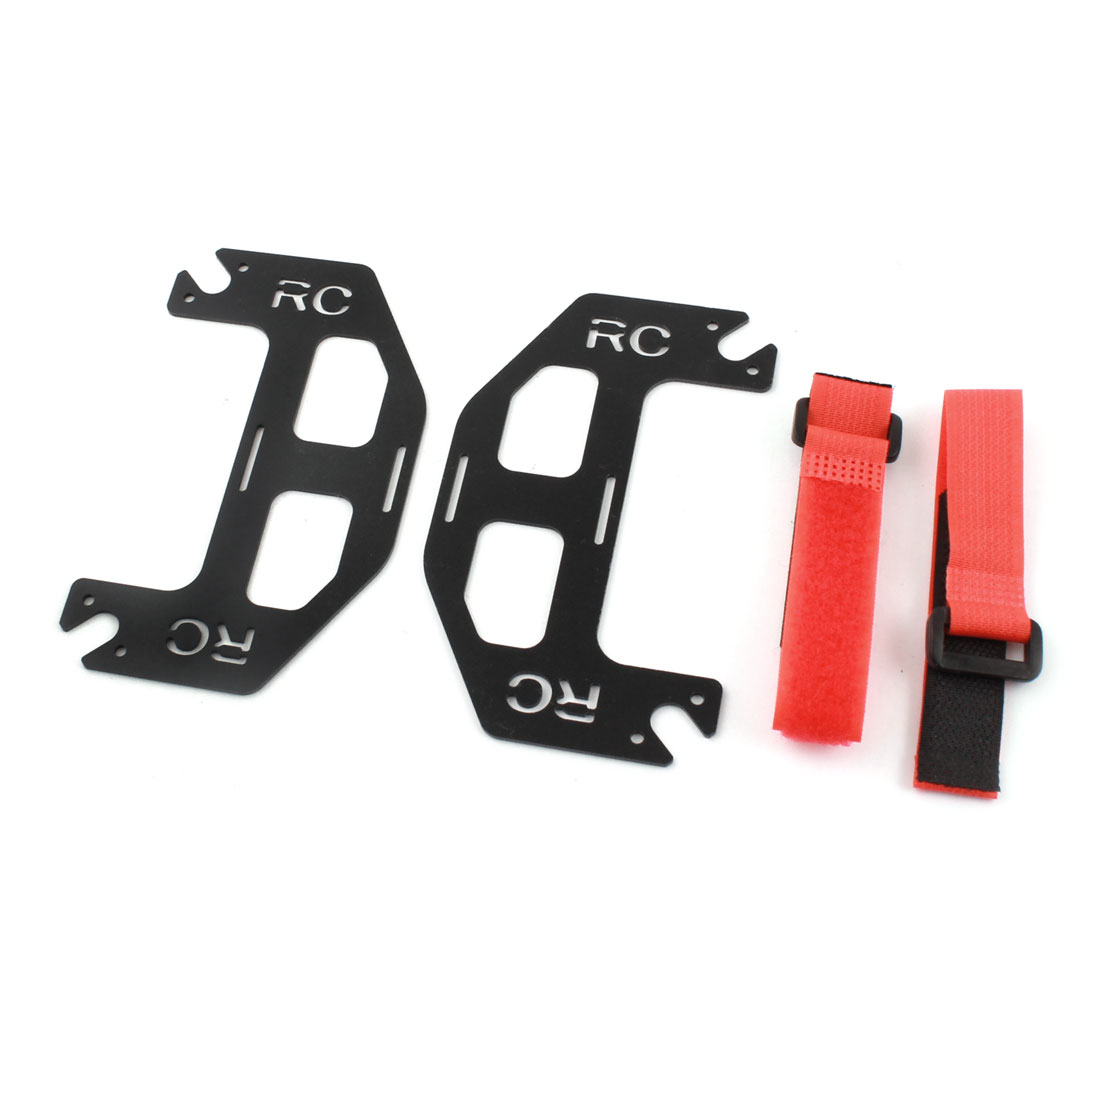 Spare Part Dual Battery Glass Fiber Mount Extended Plate Board w Red Bind Strap for DJI Phantom